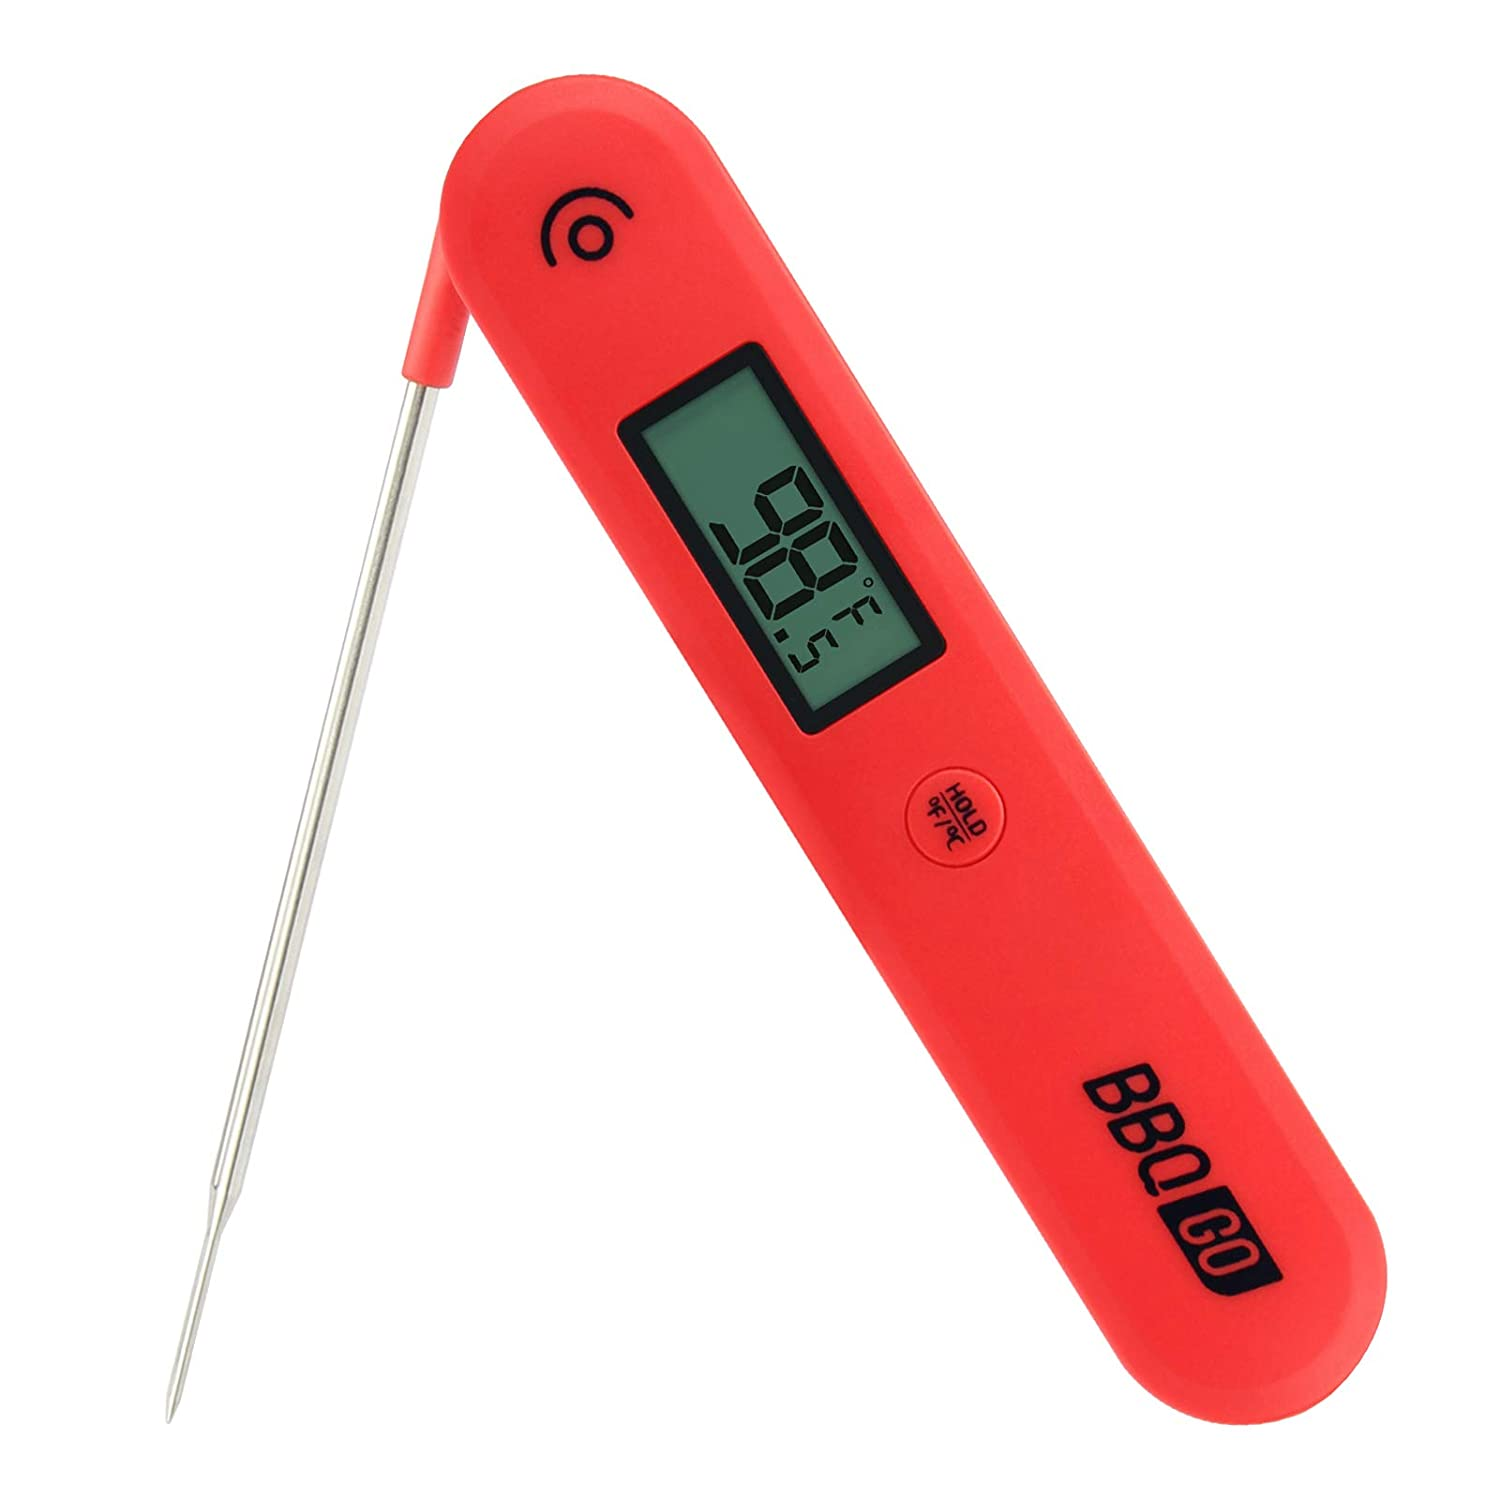 BBQGO Digital Instant Read Candy Thermometer, Kitchen Cooking Food Meat Thermometer with Calibration, Magnet, Foldable Probe, Large Screen, Instant Read Thermometer for Smoker, Oven, Drum (BG-HH1C)